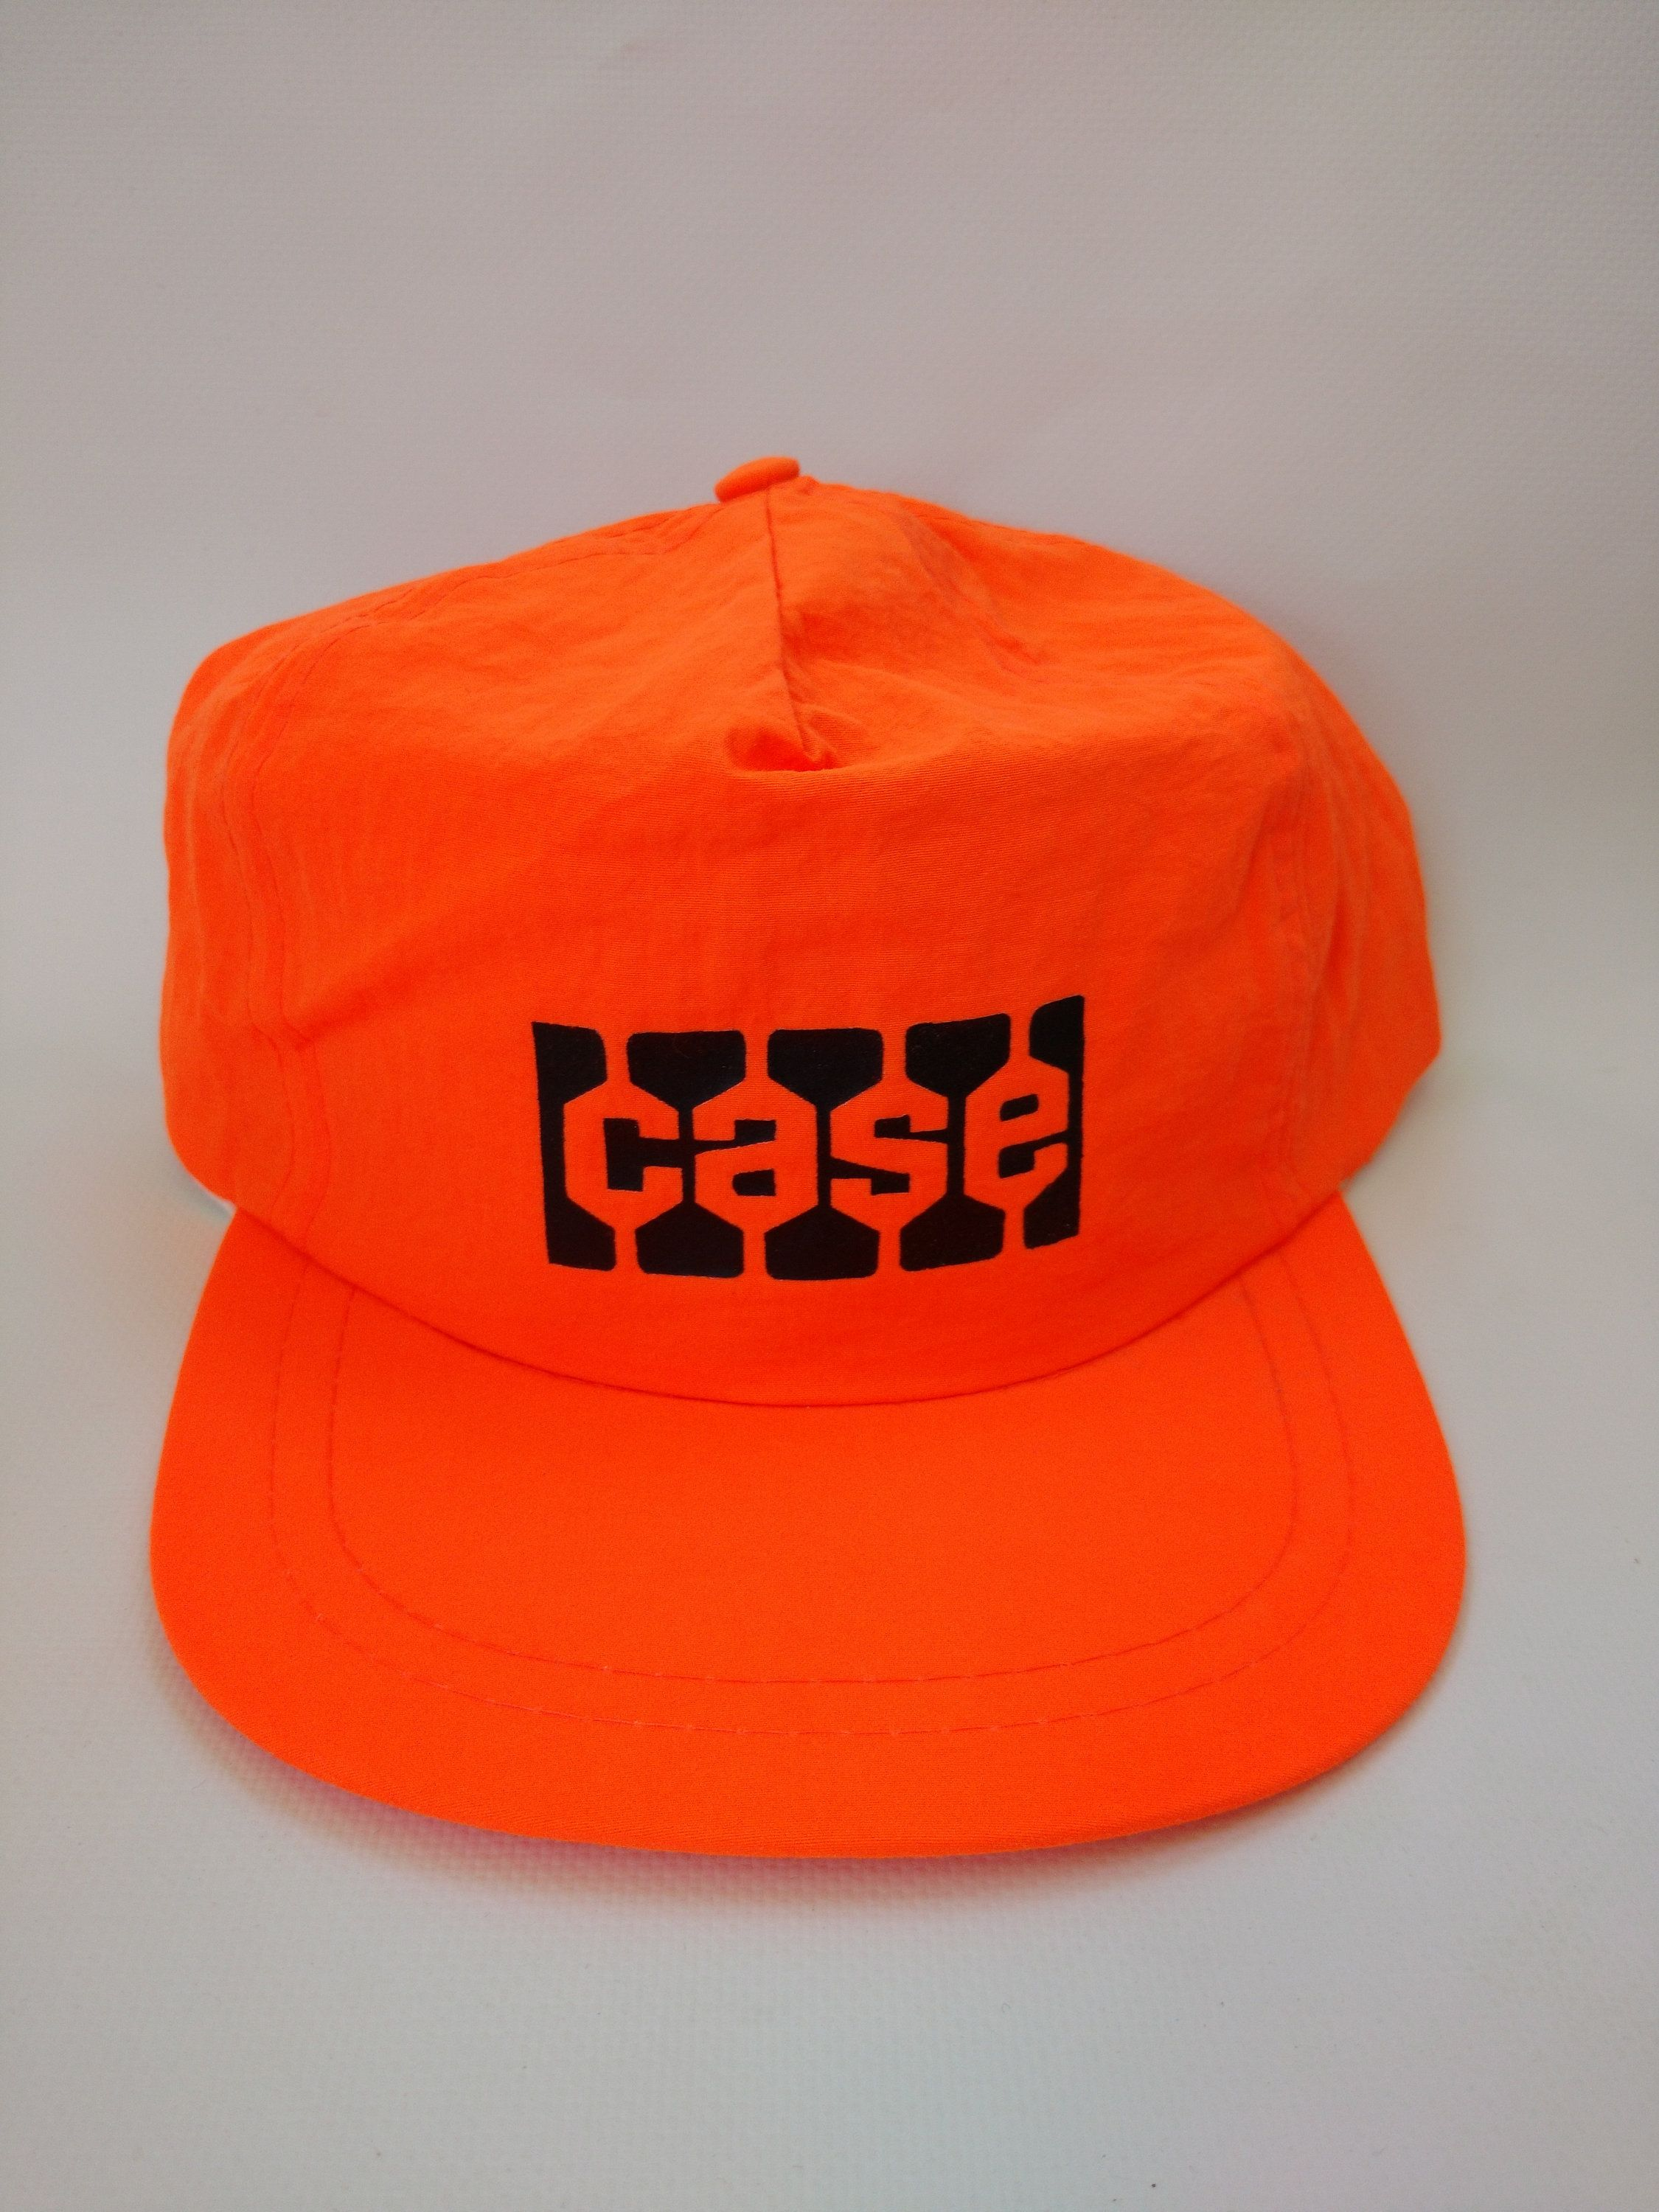 634a84967b1 Vintage Case Construction Neon Orange Retro 1980s Hat Lightweight Nylon  Fabric Snapback Bulldozer Excavator Machine Company Advertising by  RockabillyPinUps ...